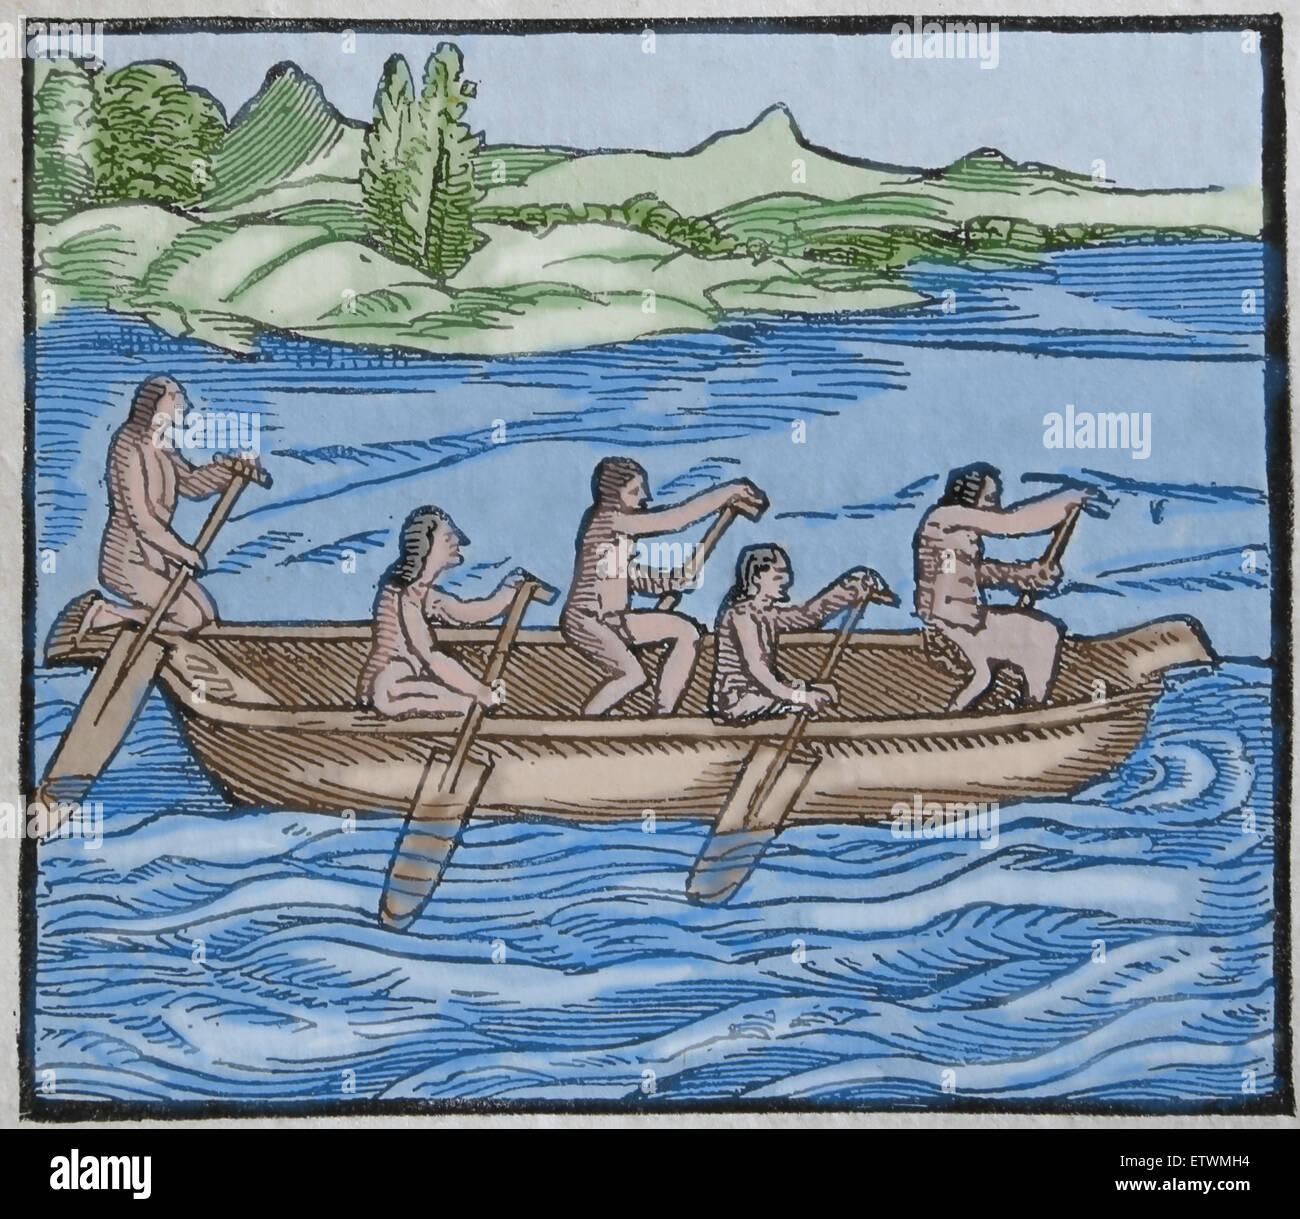 America. Indian canoe of Paria country. Wood engraving. 16th century. Later colouration. - Stock Image